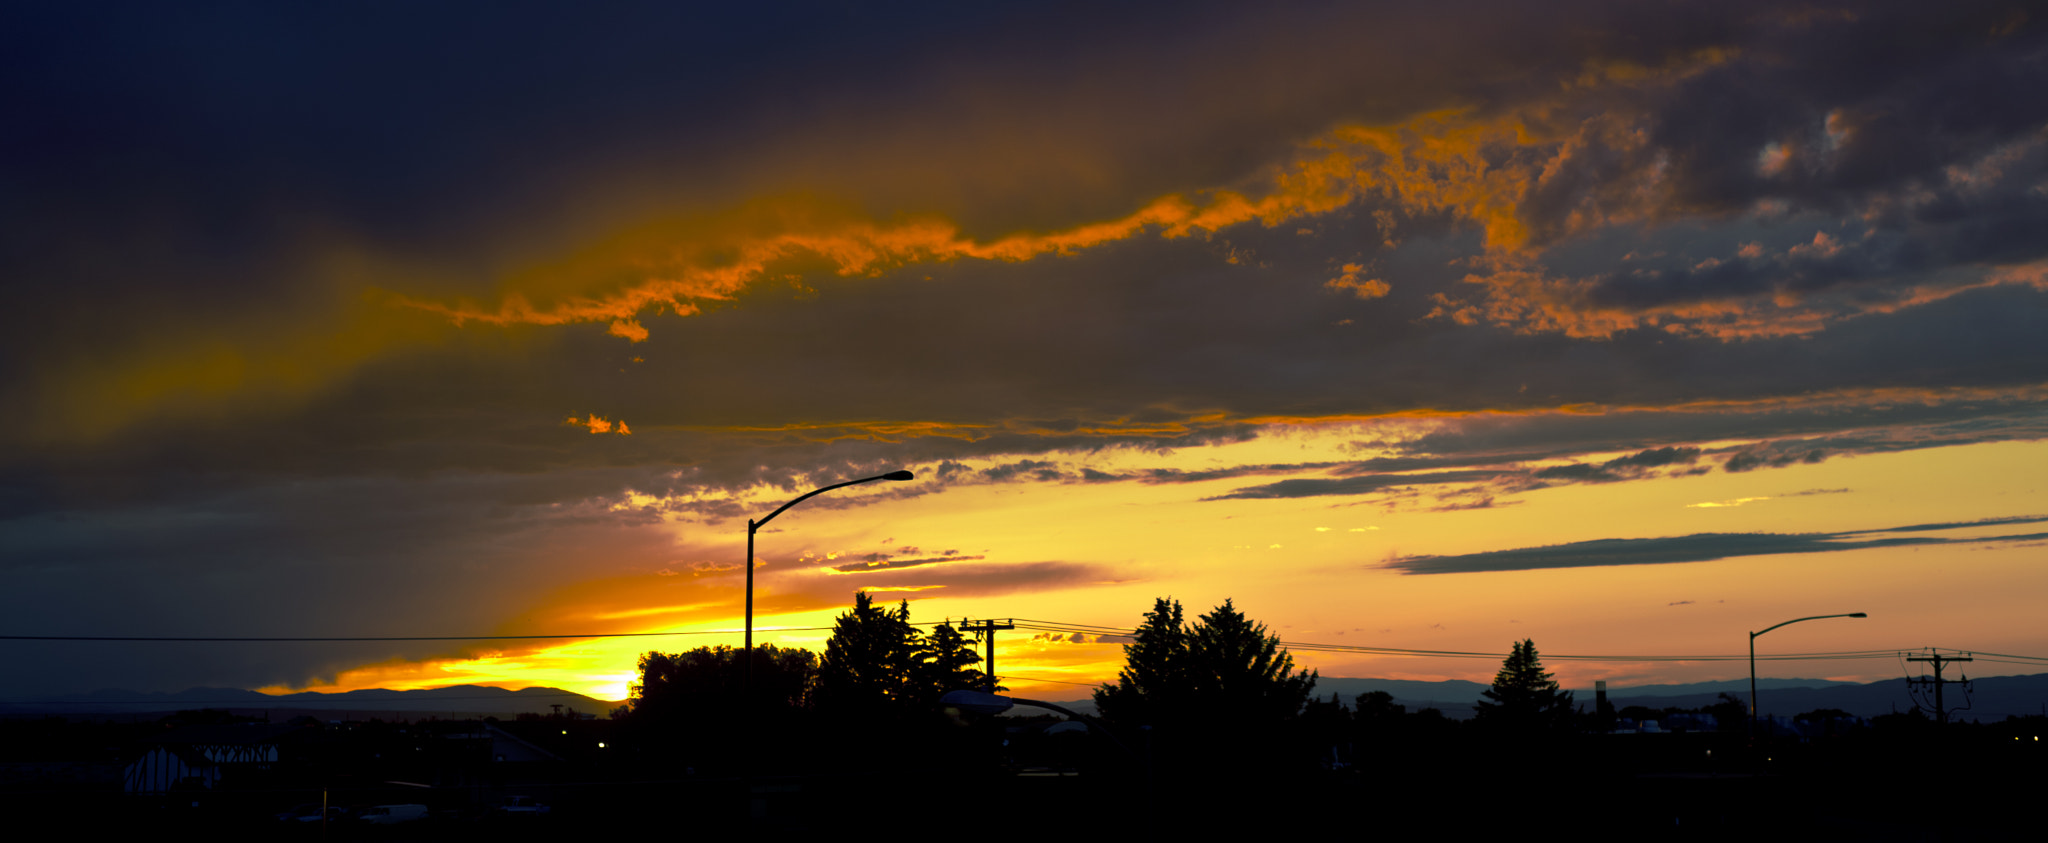 Photograph Sunset Over Gallatin Valley by Patrick Larson on 500px